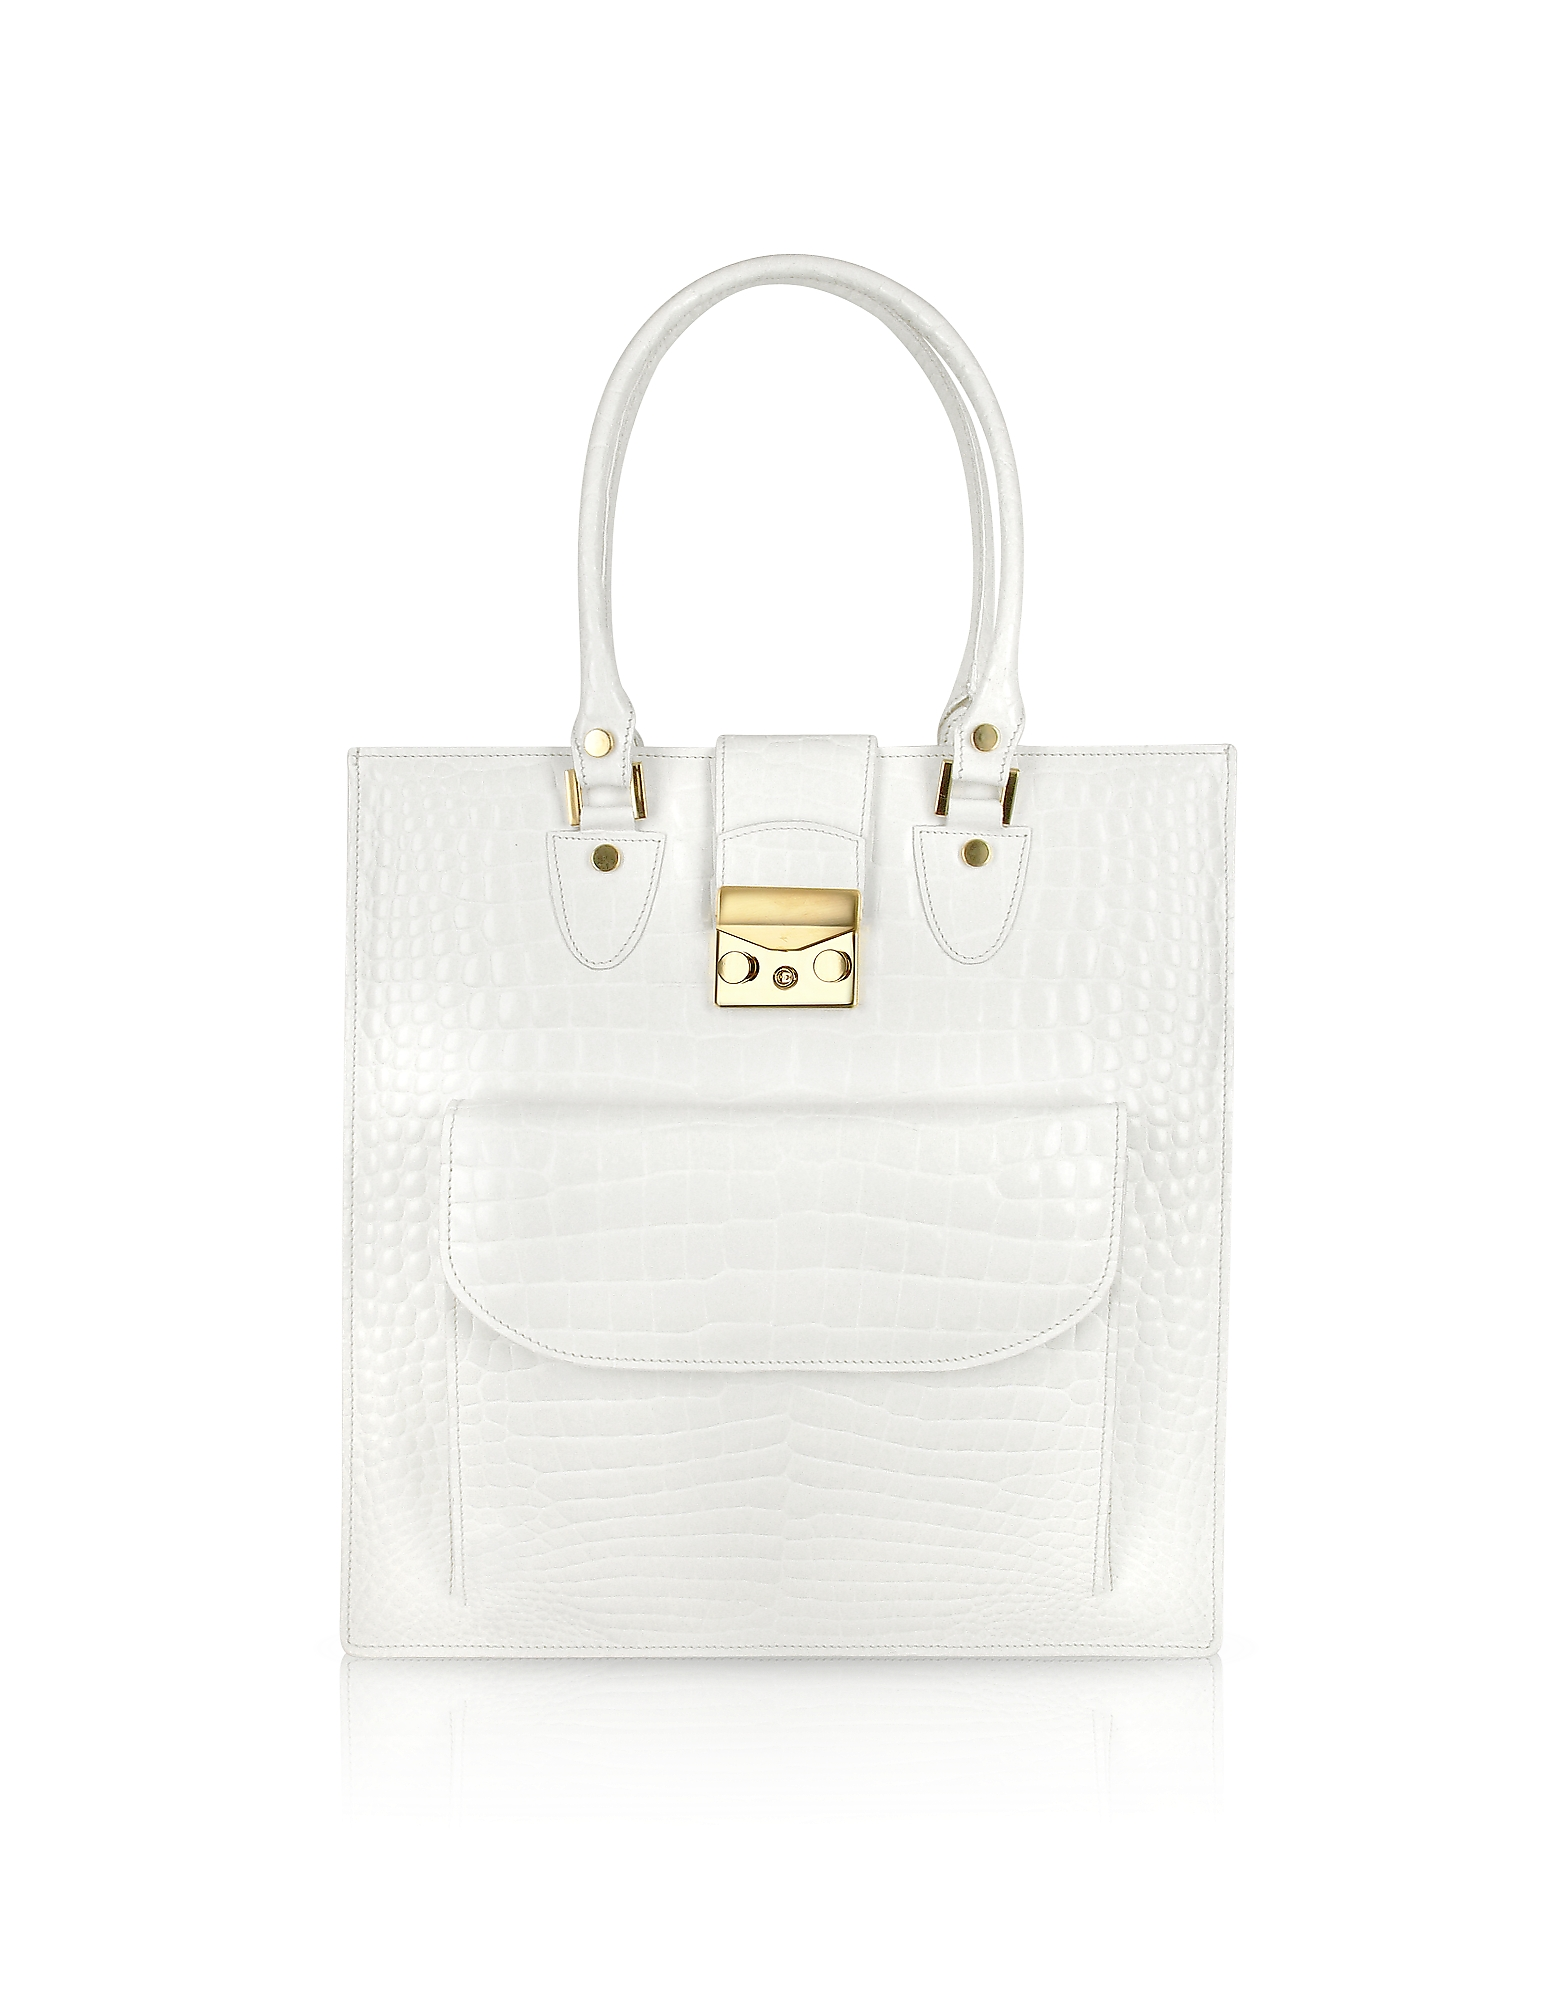 L.A.P.A. Handbags, White Croco Stamped Leather Tote Bag